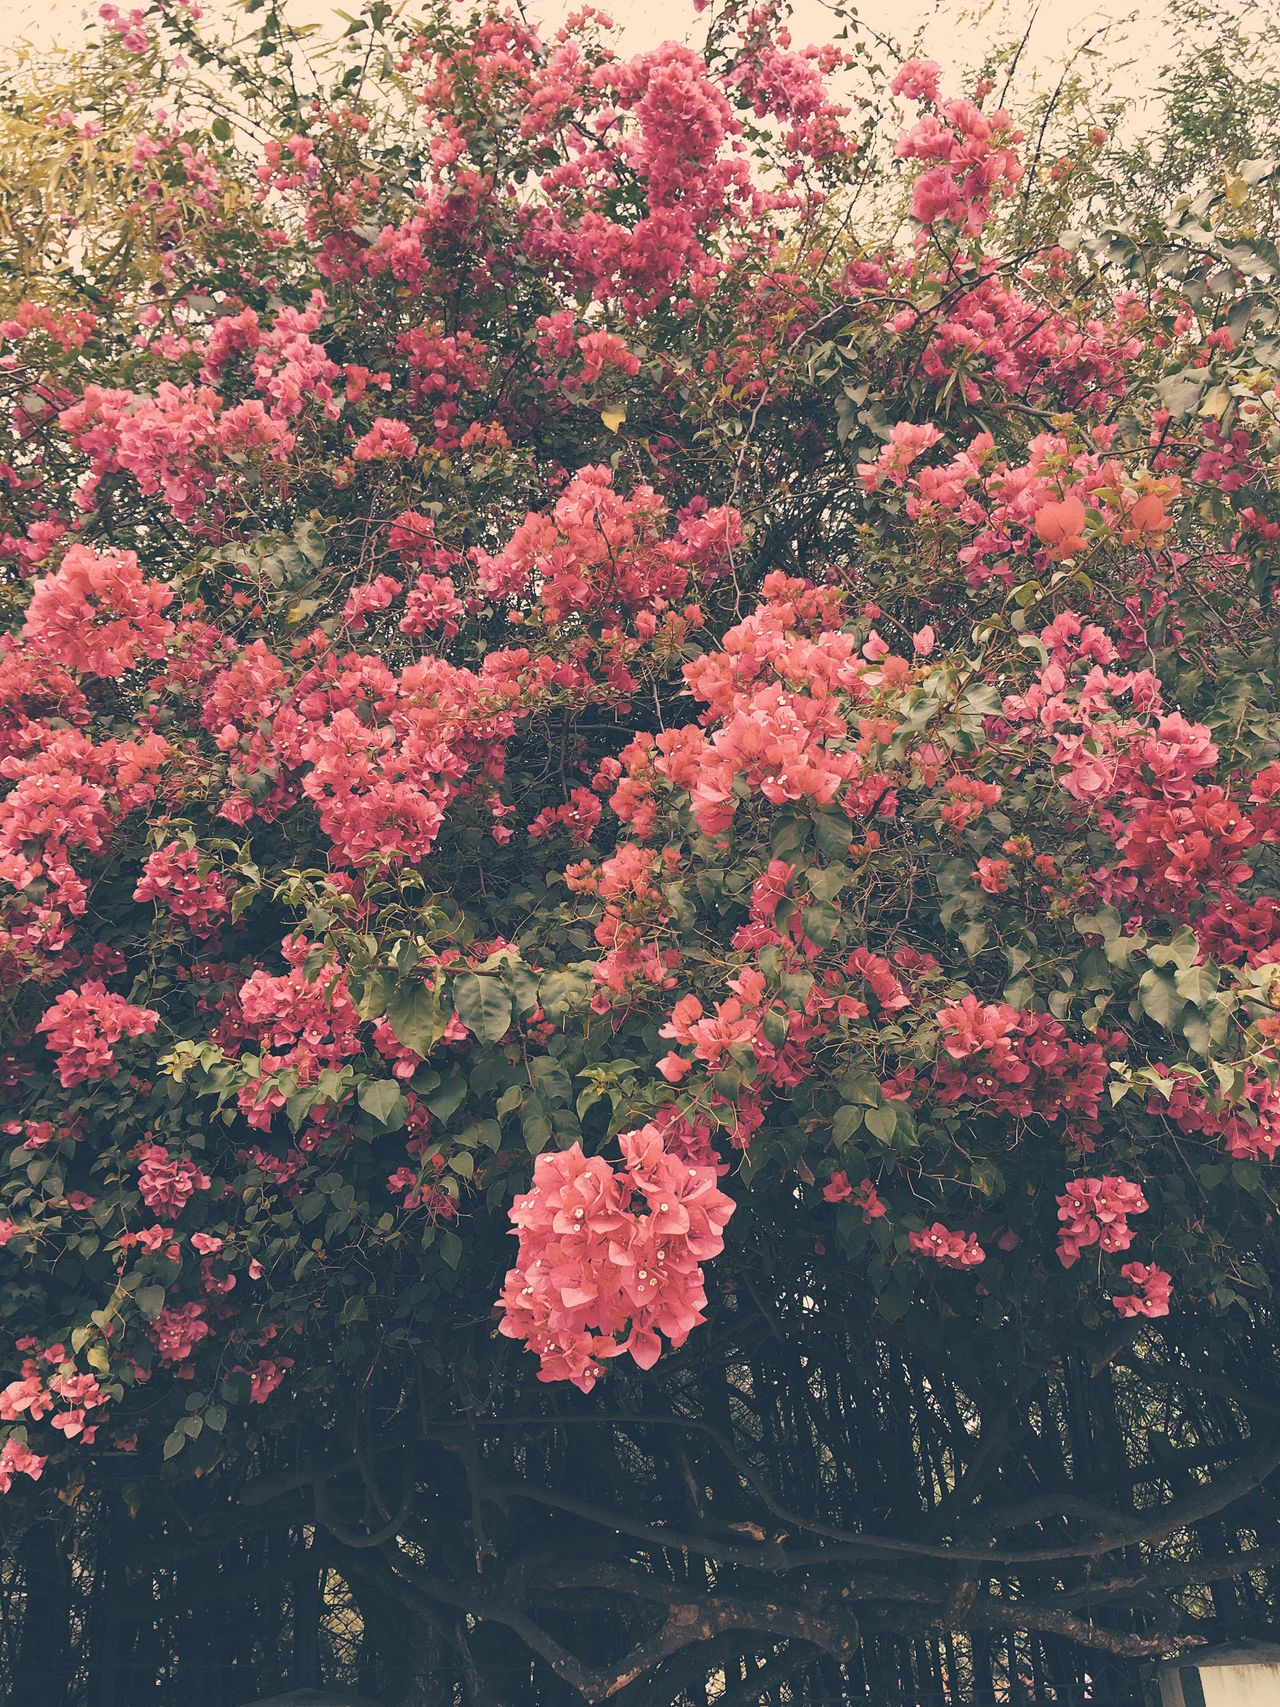 Bougainvillea IPhone Flower Growth Nature Fragility Beauty In Nature Freshness Plant Day Outdoors No People Blooming Flower Head